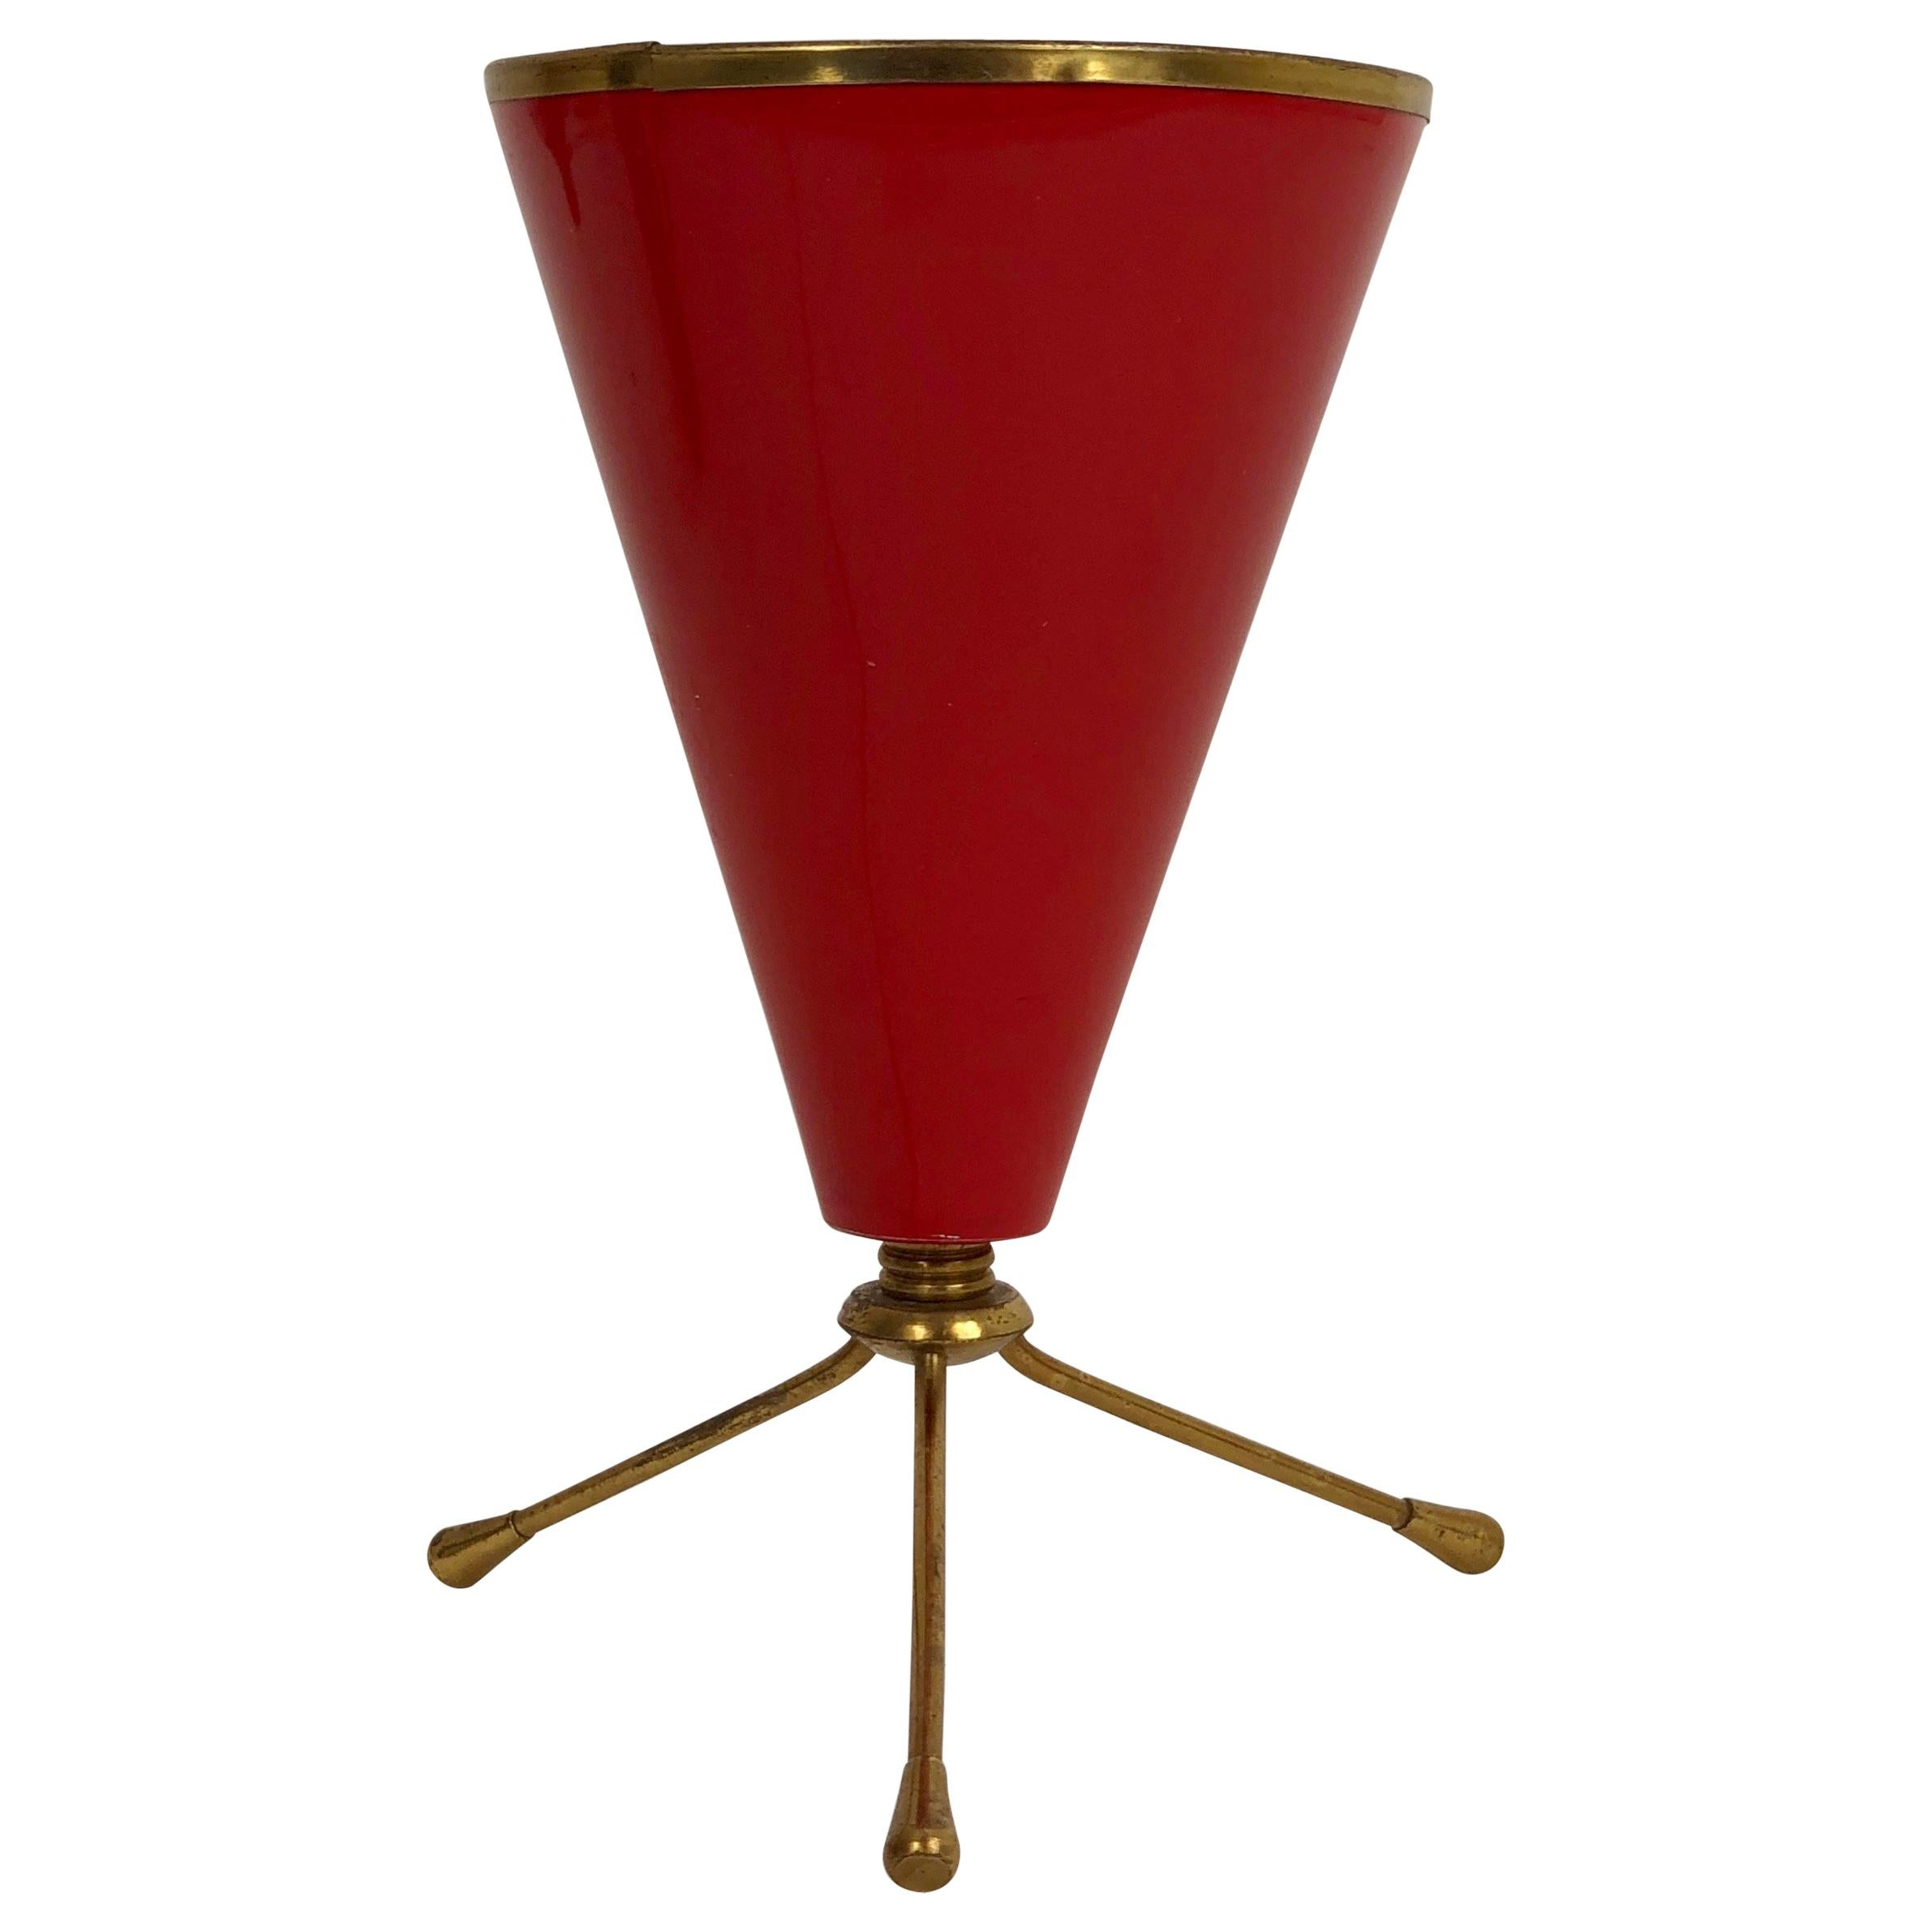 Cone Tripod Table Red Lamp in Brass and Lacquered Metal, Stilnovo, Italy, 1950s